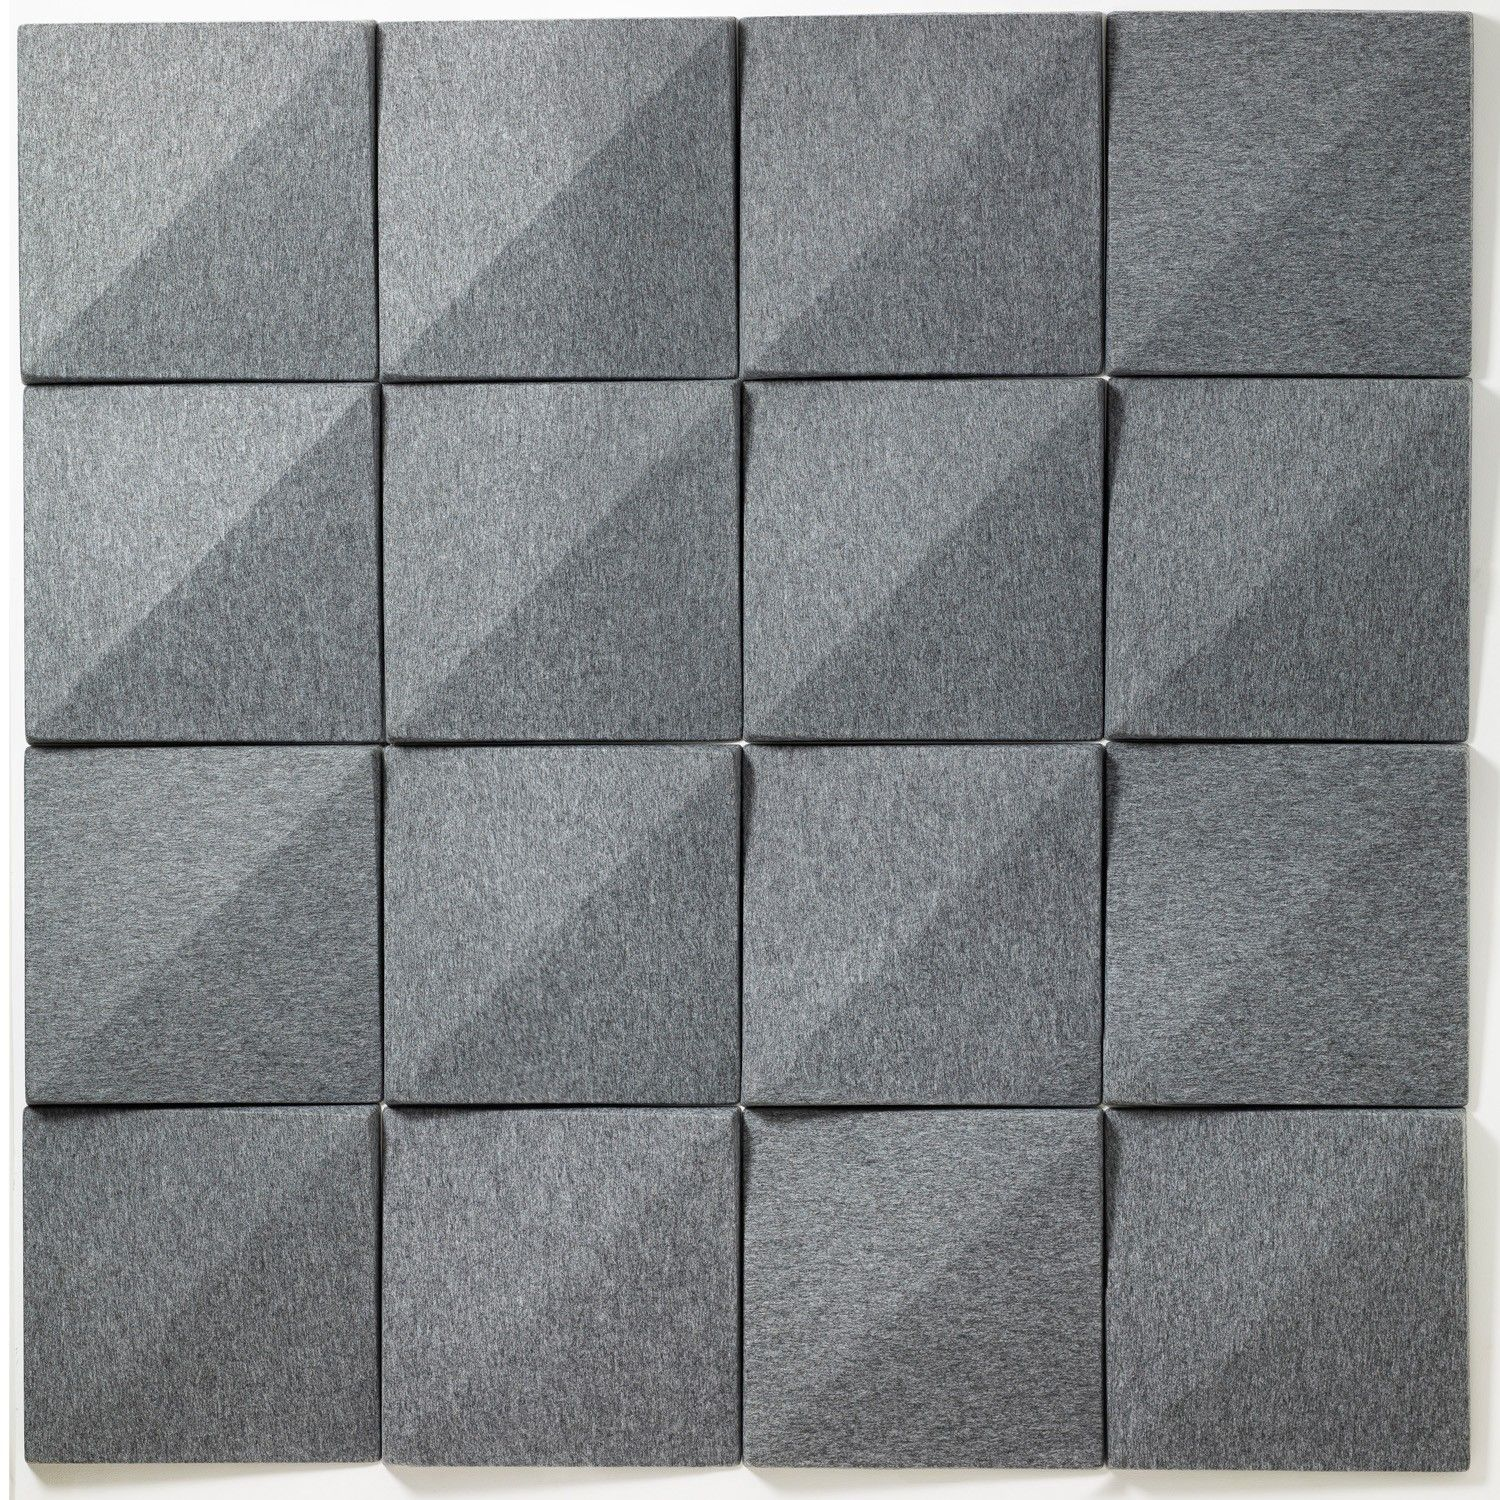 offect soundwave bella acoustic panels finishes on acoustic wall panels id=92742